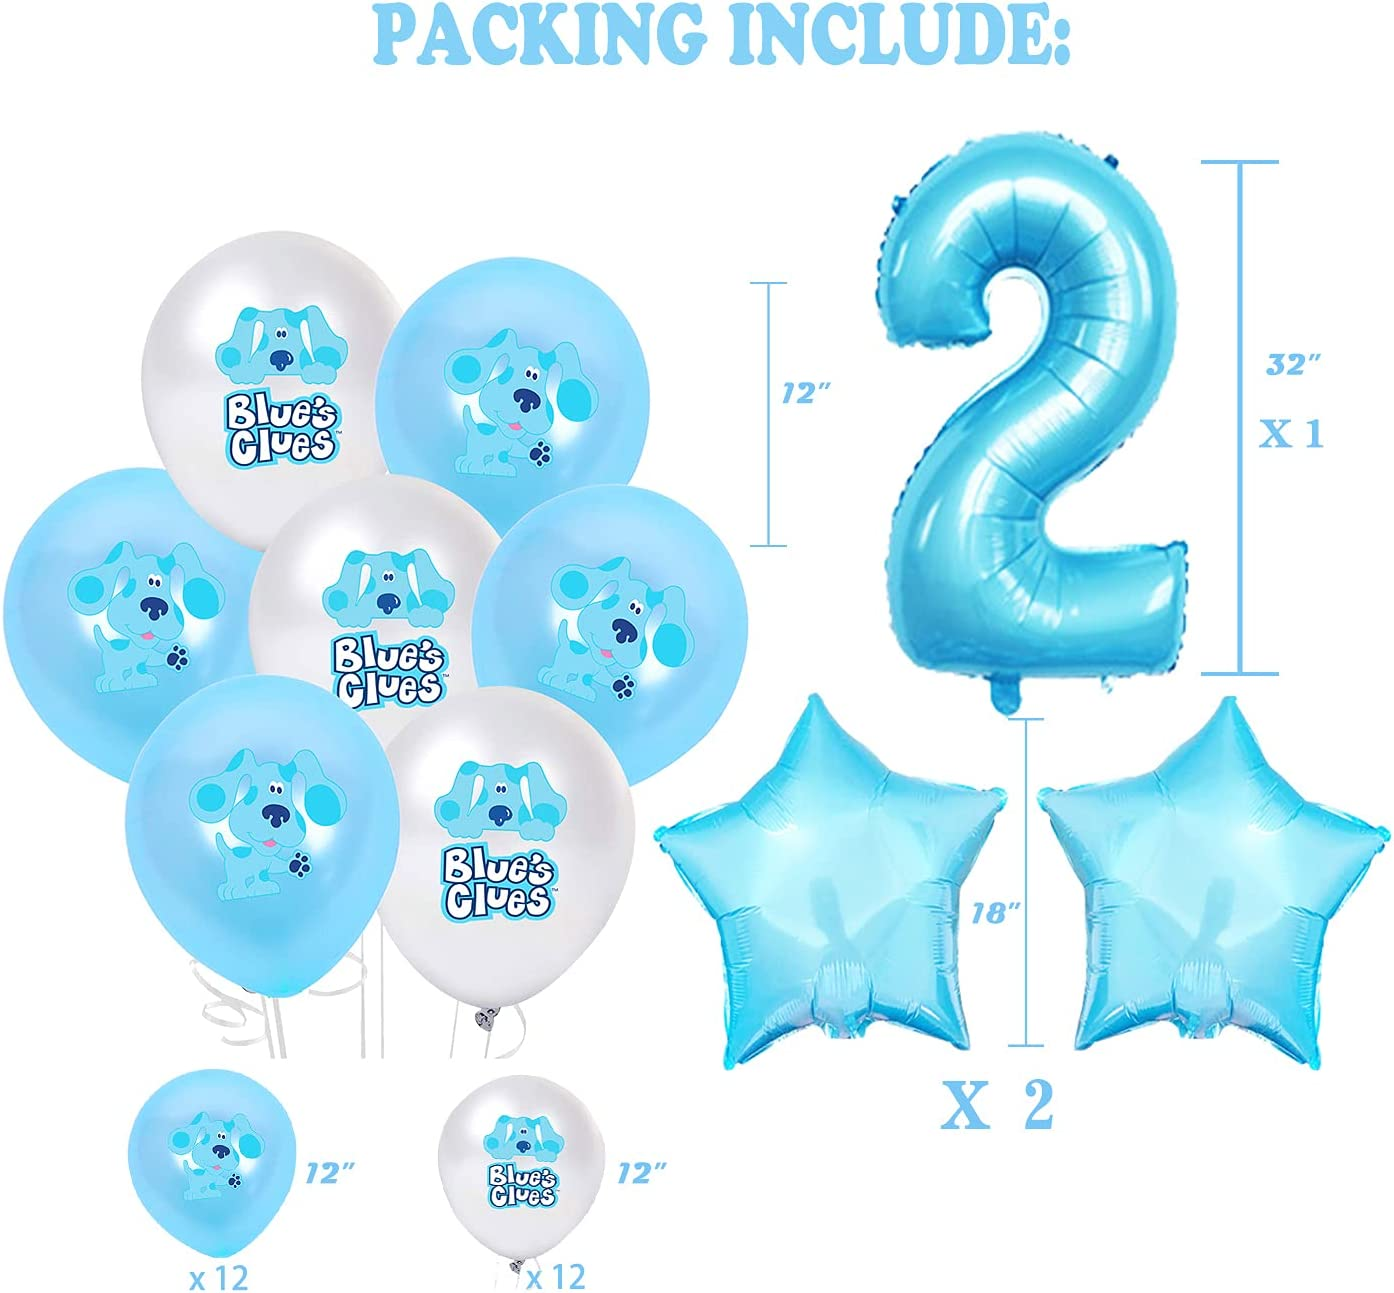 Blue Clue 2nd Birthday Party Balloons 20pcs Blue clues latex ballons with number 2 balloons,blue clue party decorations,blue clue party supplies